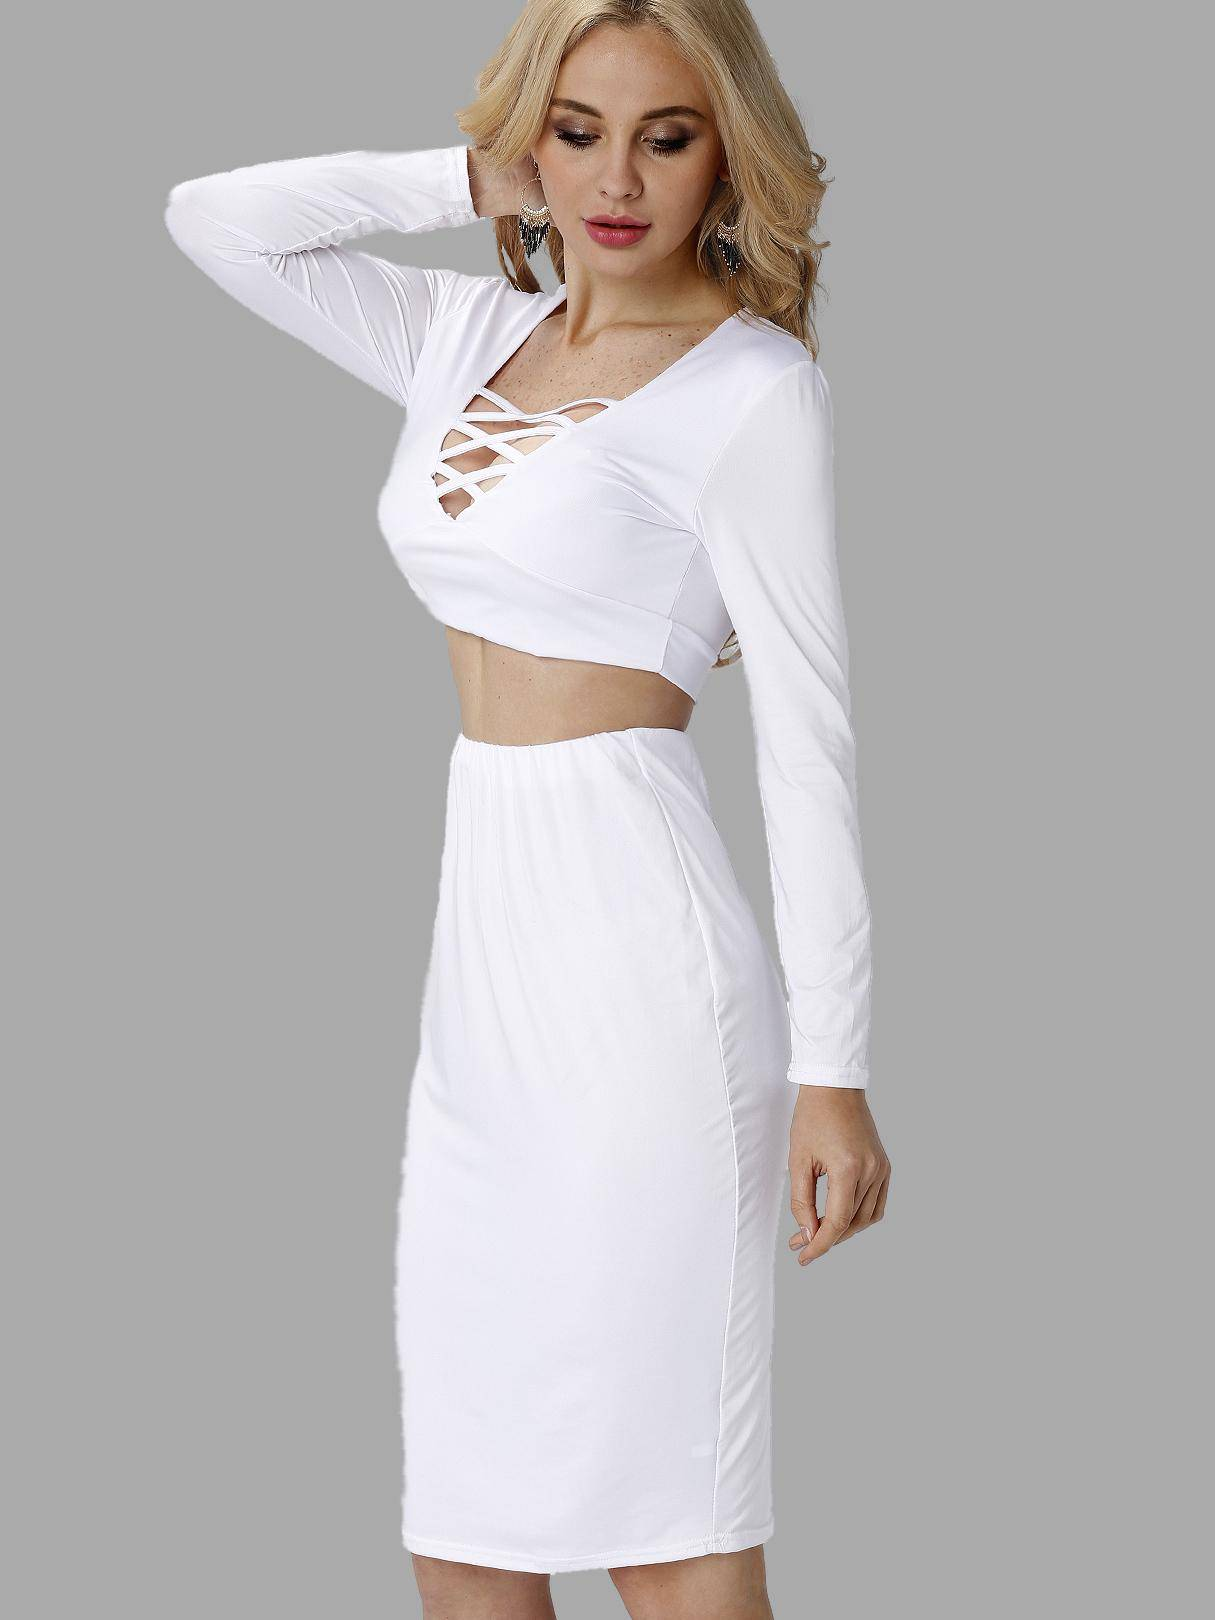 White Hollow Out Crop Top & Midi Skirt Co-ord